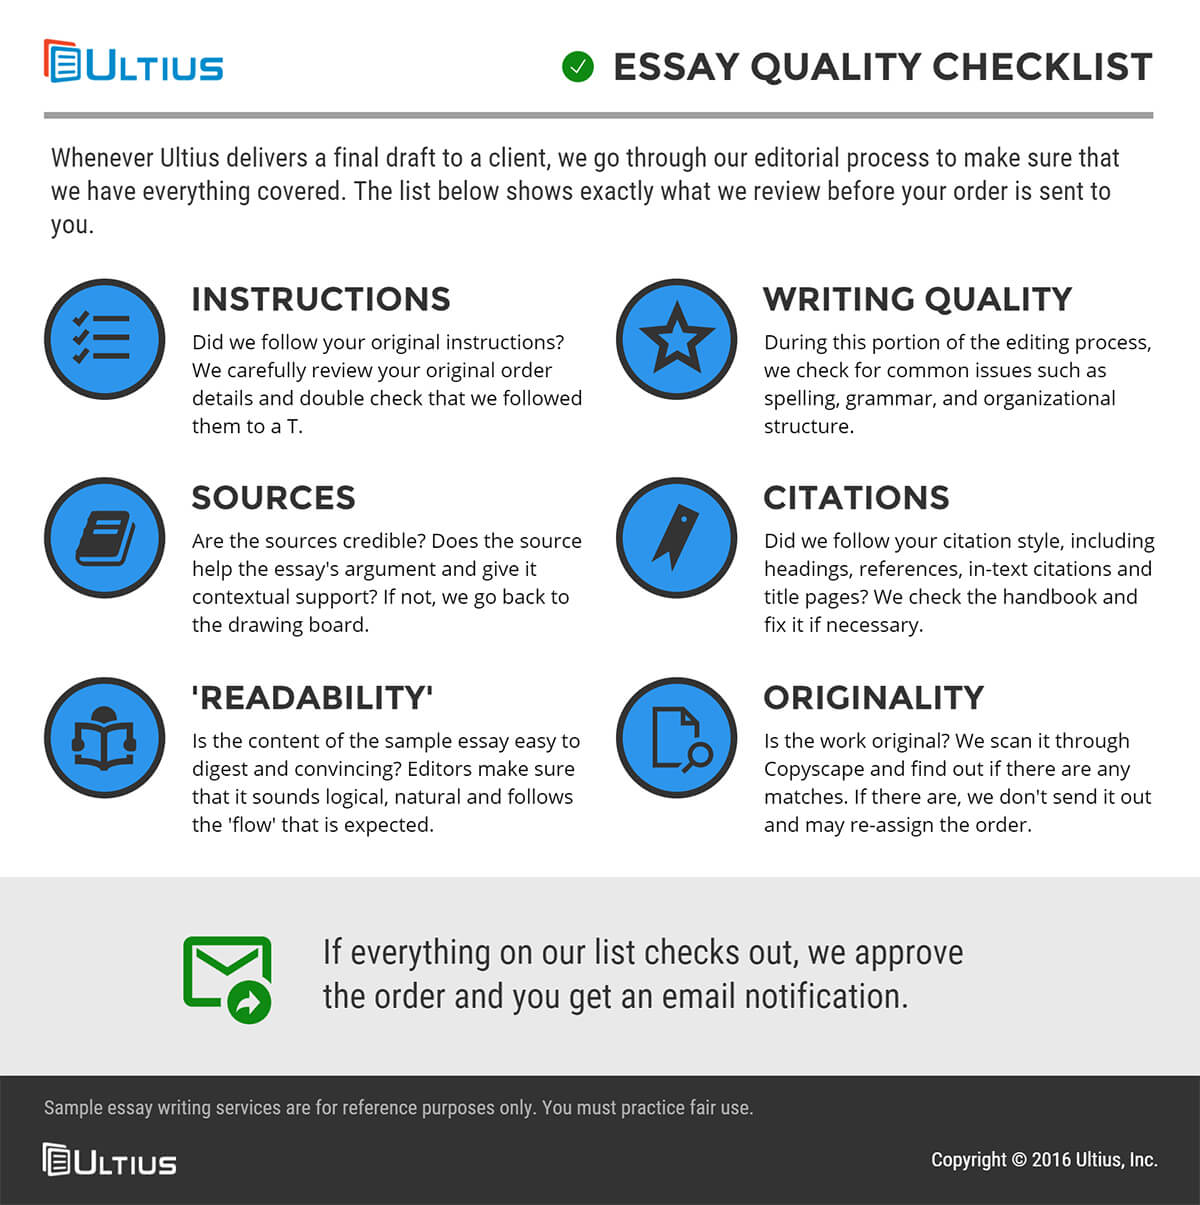 014 Essay Example Purchased Quality Checklist Dreaded Persuasive Speech Topics For Elementary Meaning In Tagalog About Animals Full